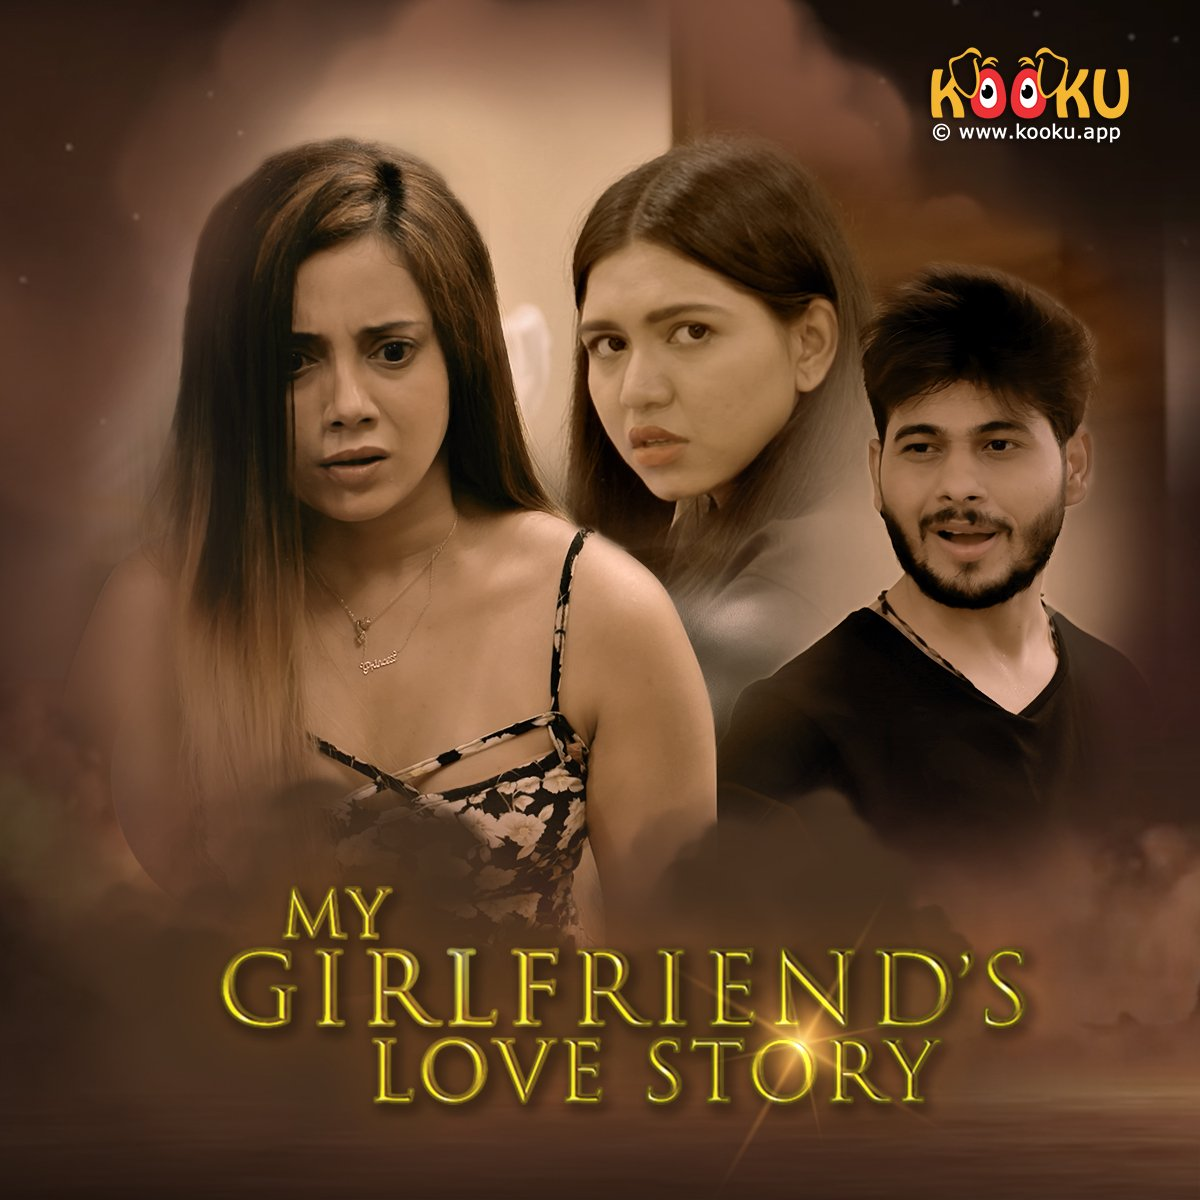 My Girlfriends Love Story 2020 Hindi S01 Complete Kooku App Web Series 720p HDRip 351MB Download